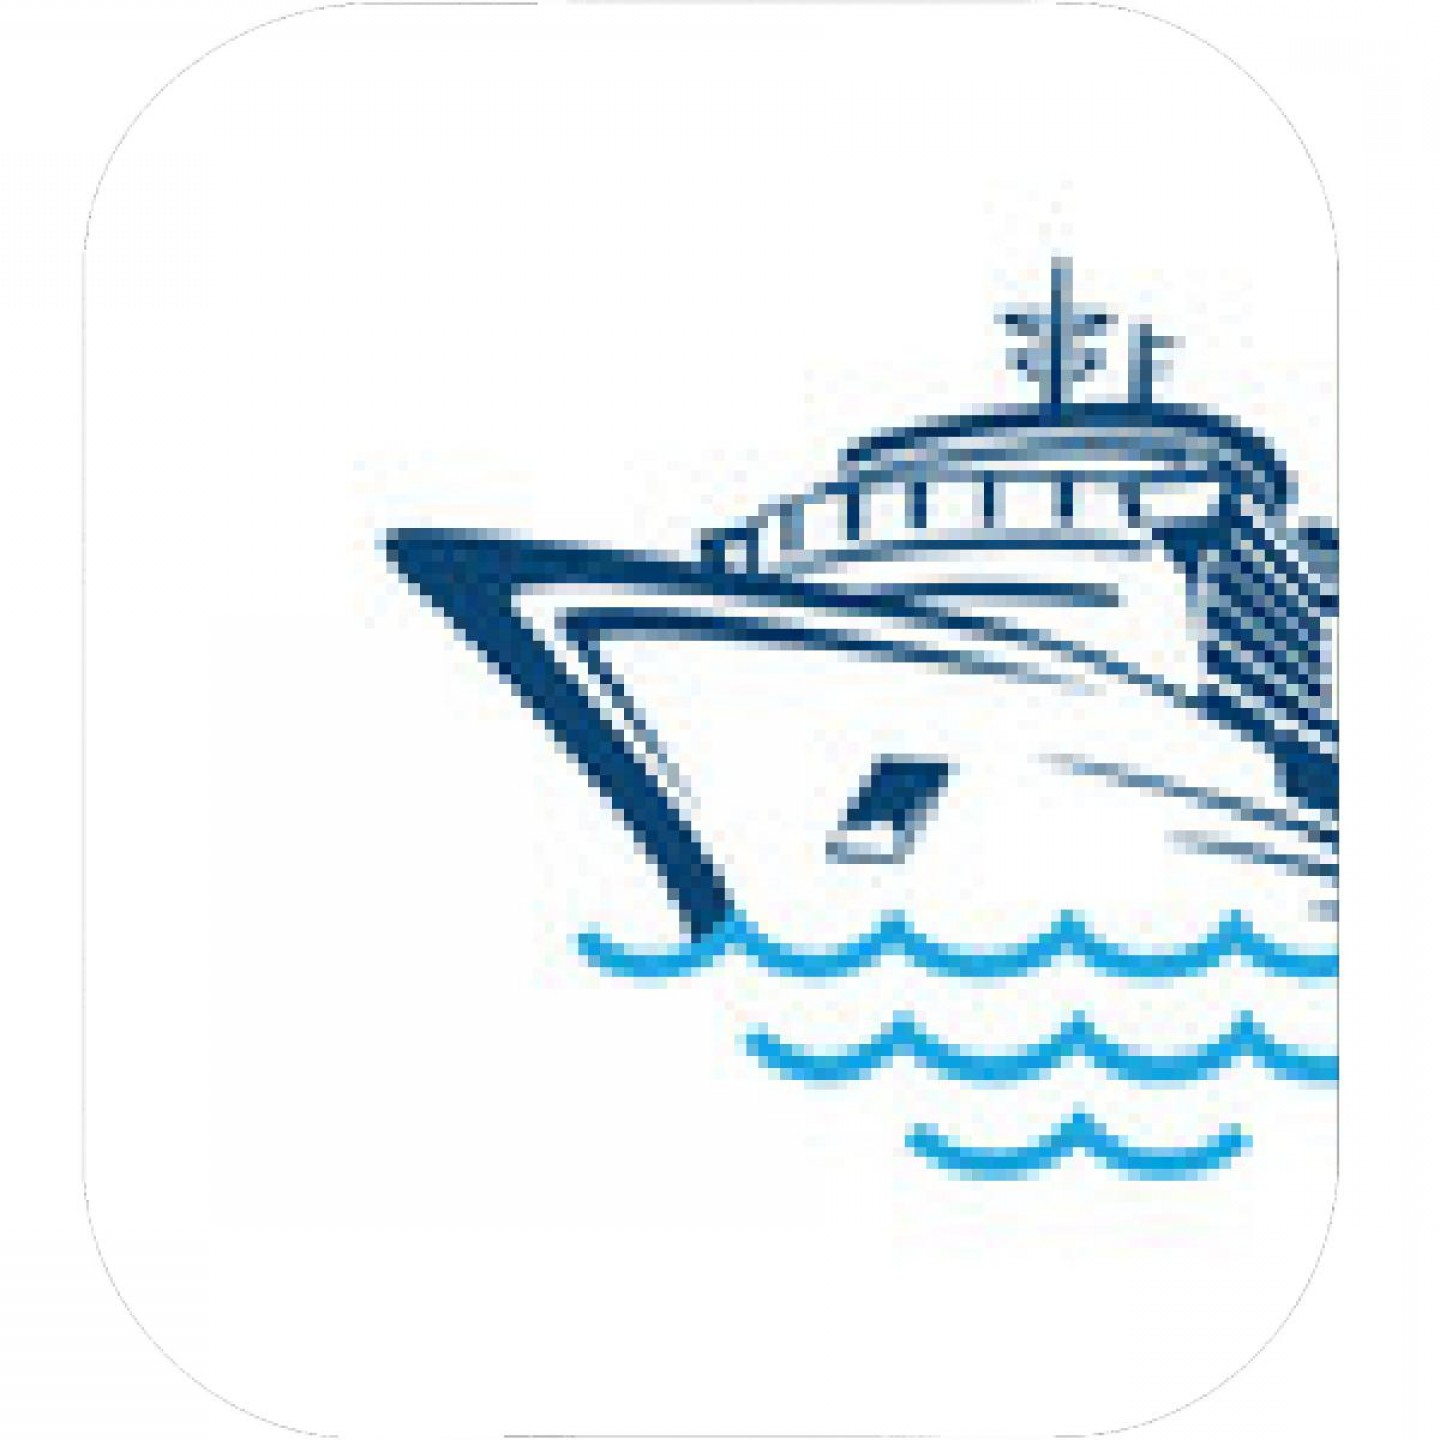 Waves With Cruise Ship Silhouette Vector: Sailing Boat Vector Logo Brand Identity For Boating Business